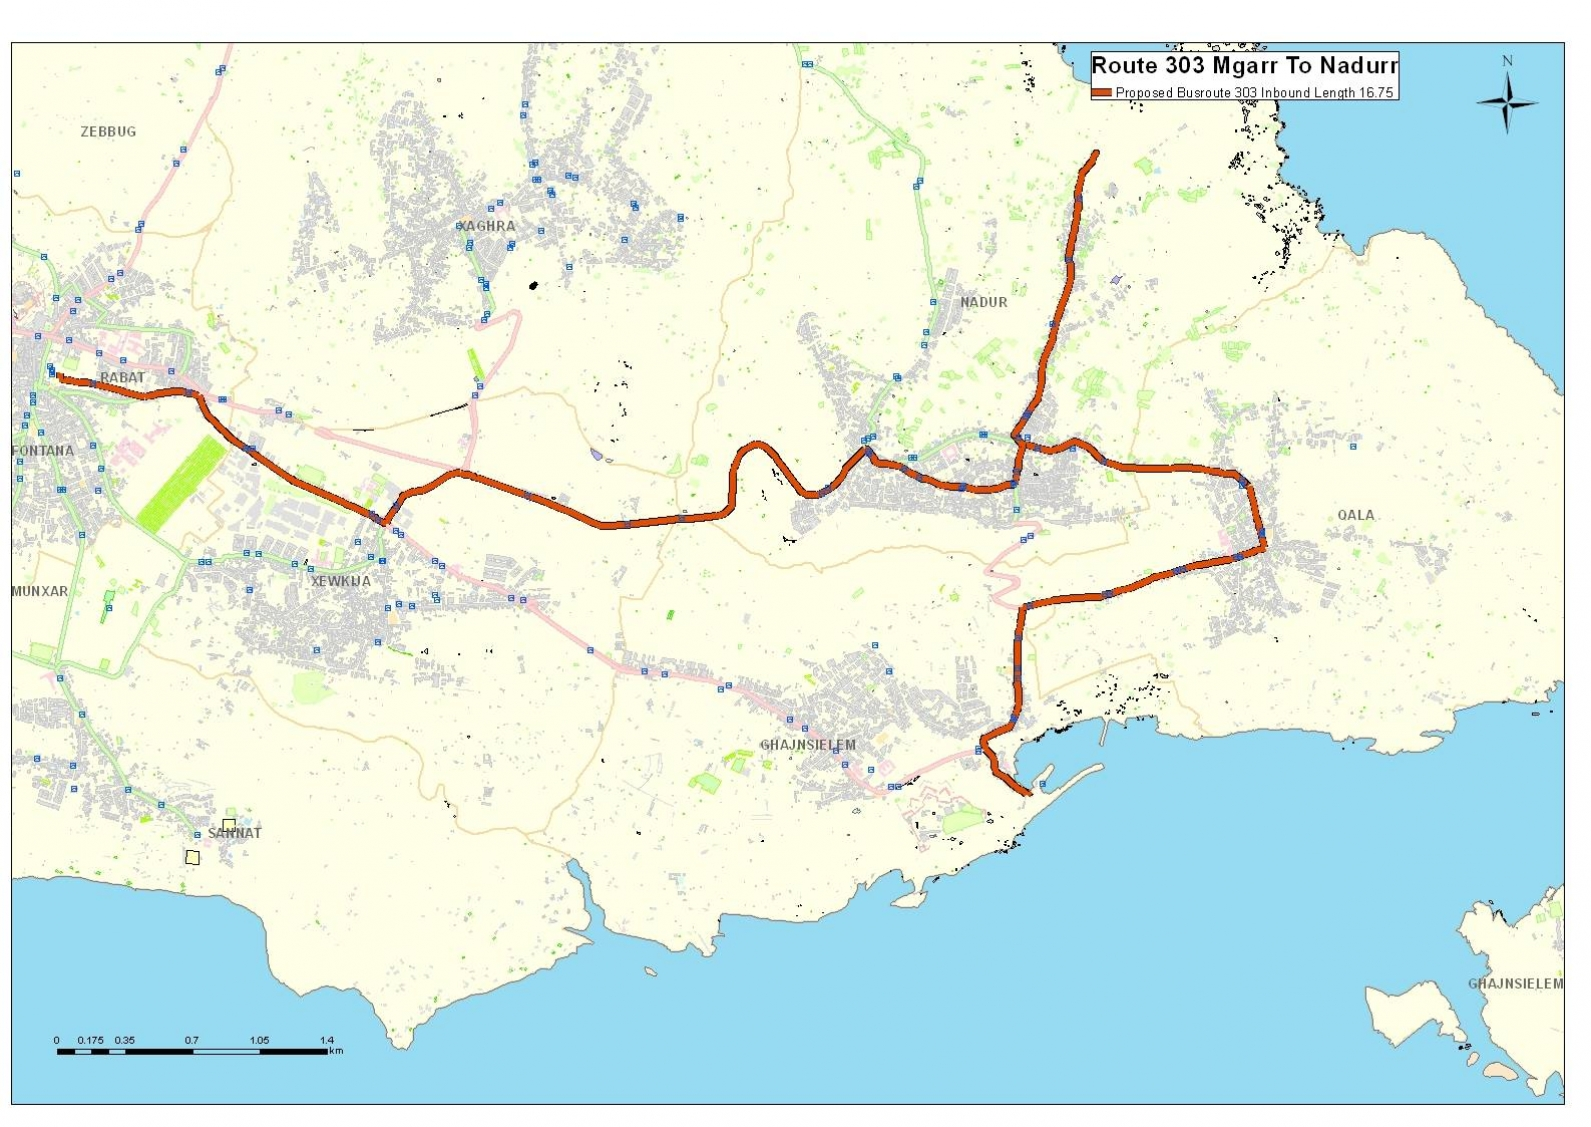 Land-current-network-routes-and-schedules-Gozo-7